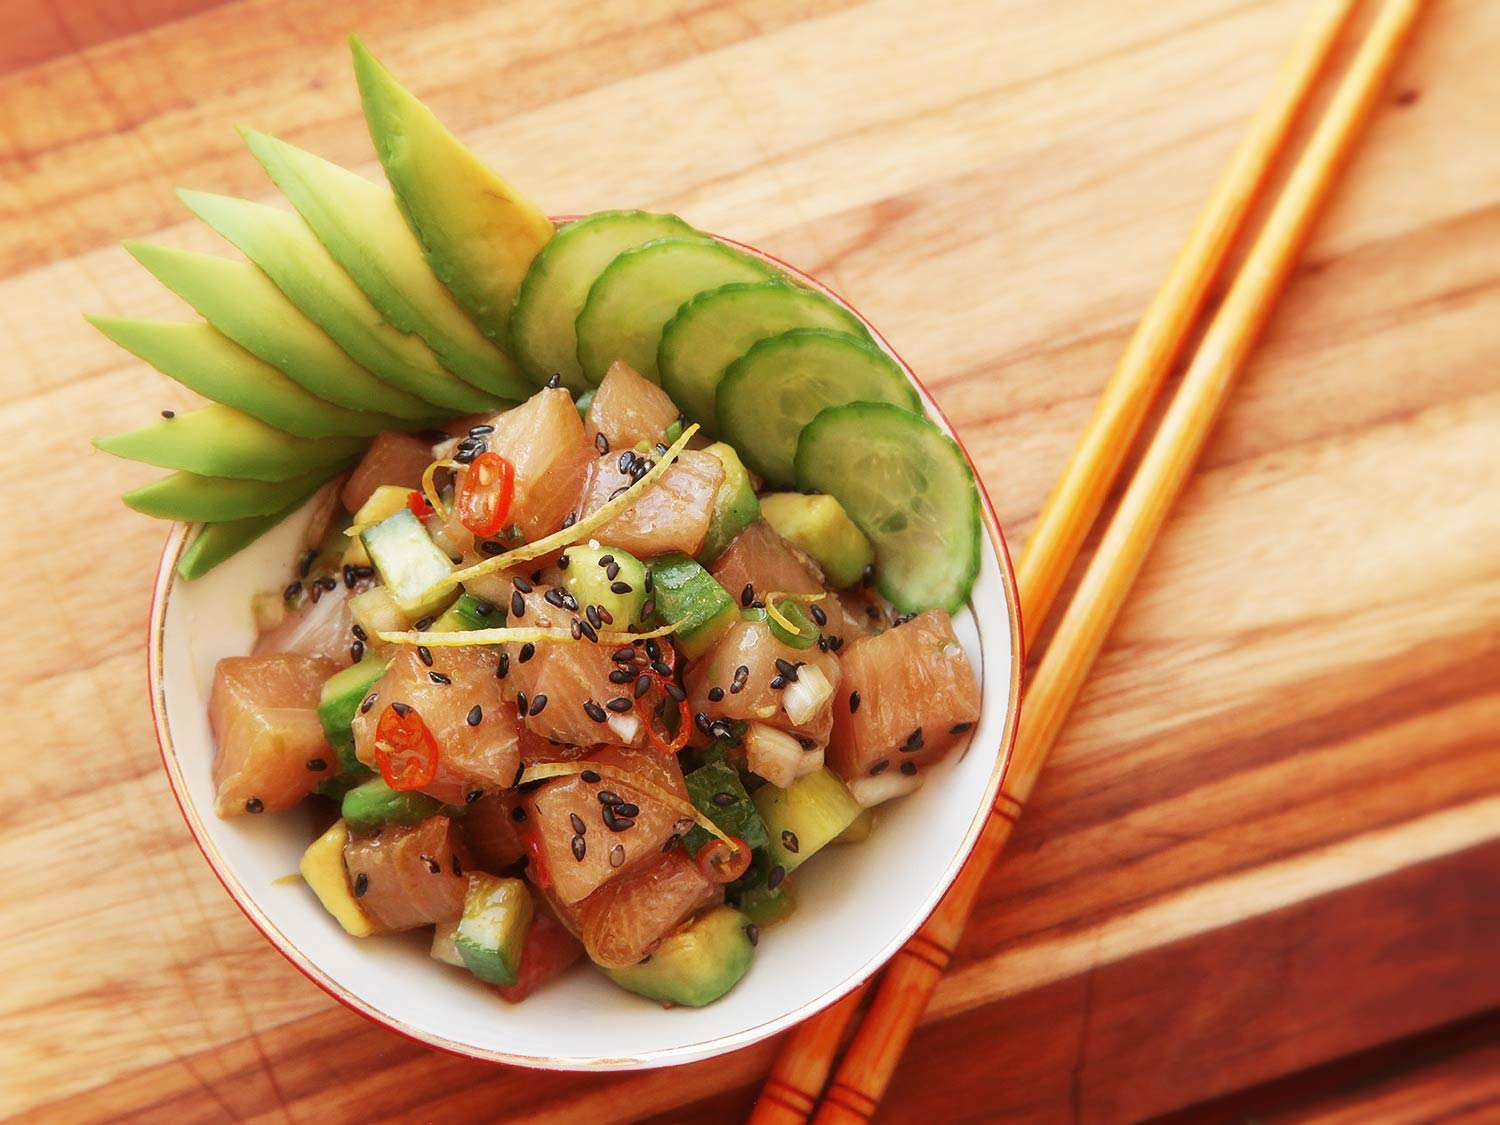 20160714-chilled-seafood-recipes-roundup-06.jpg